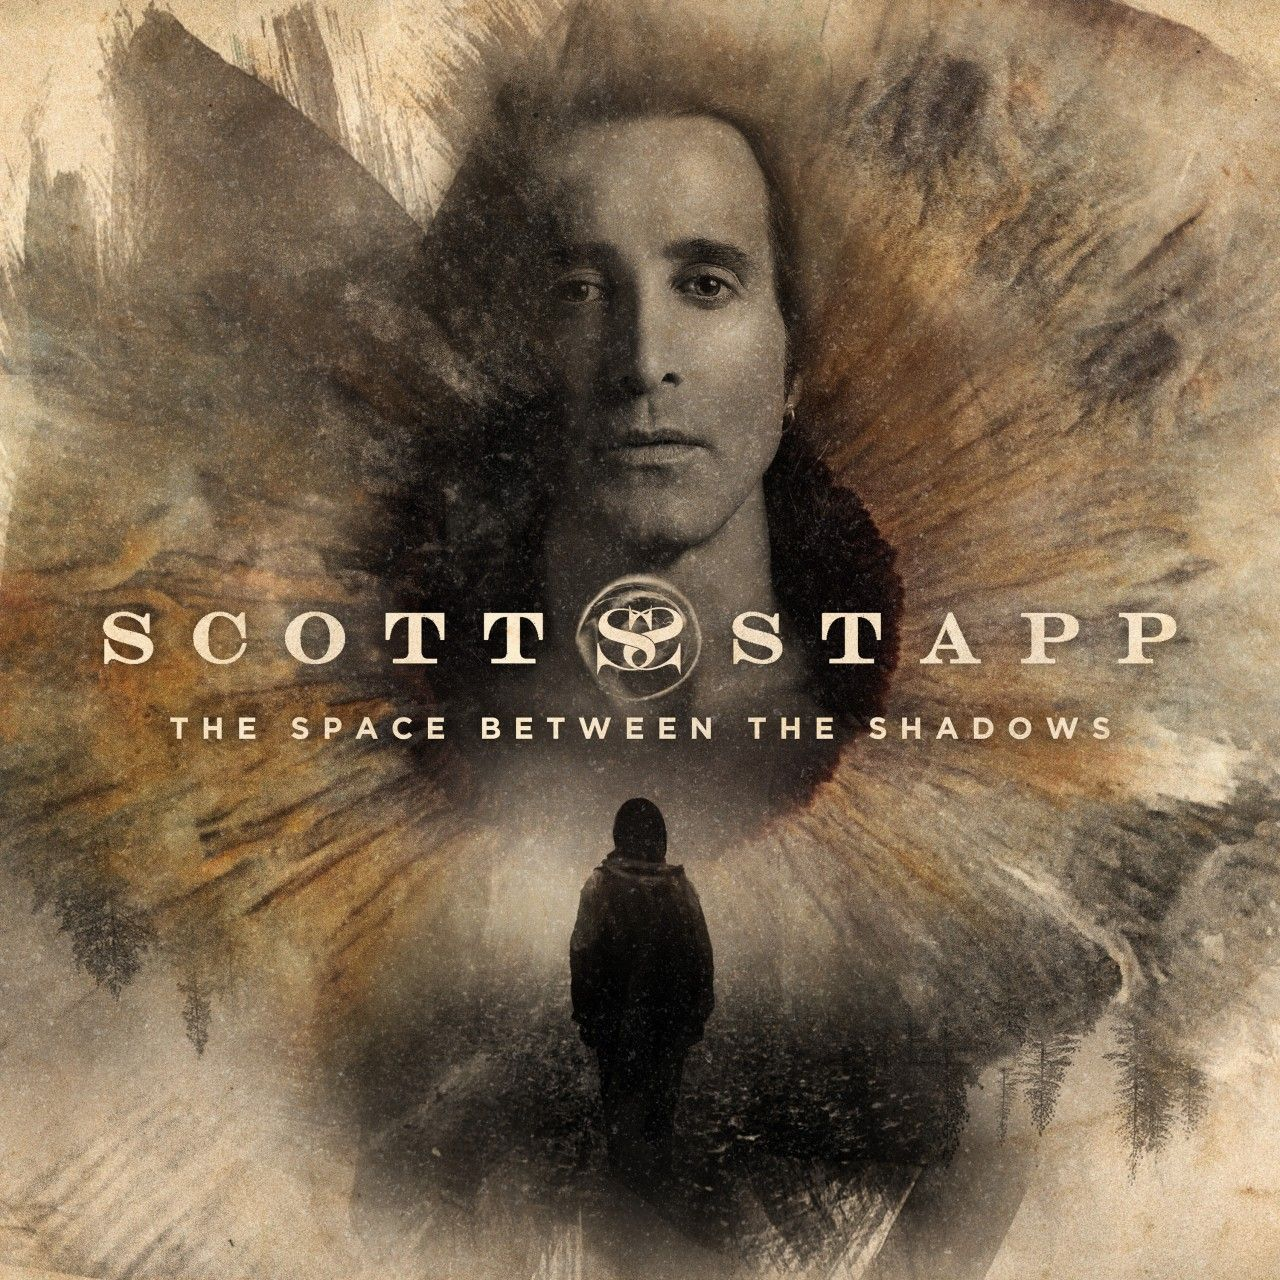 Scott Stapp - The Space Between The Shadows, CD-Cover